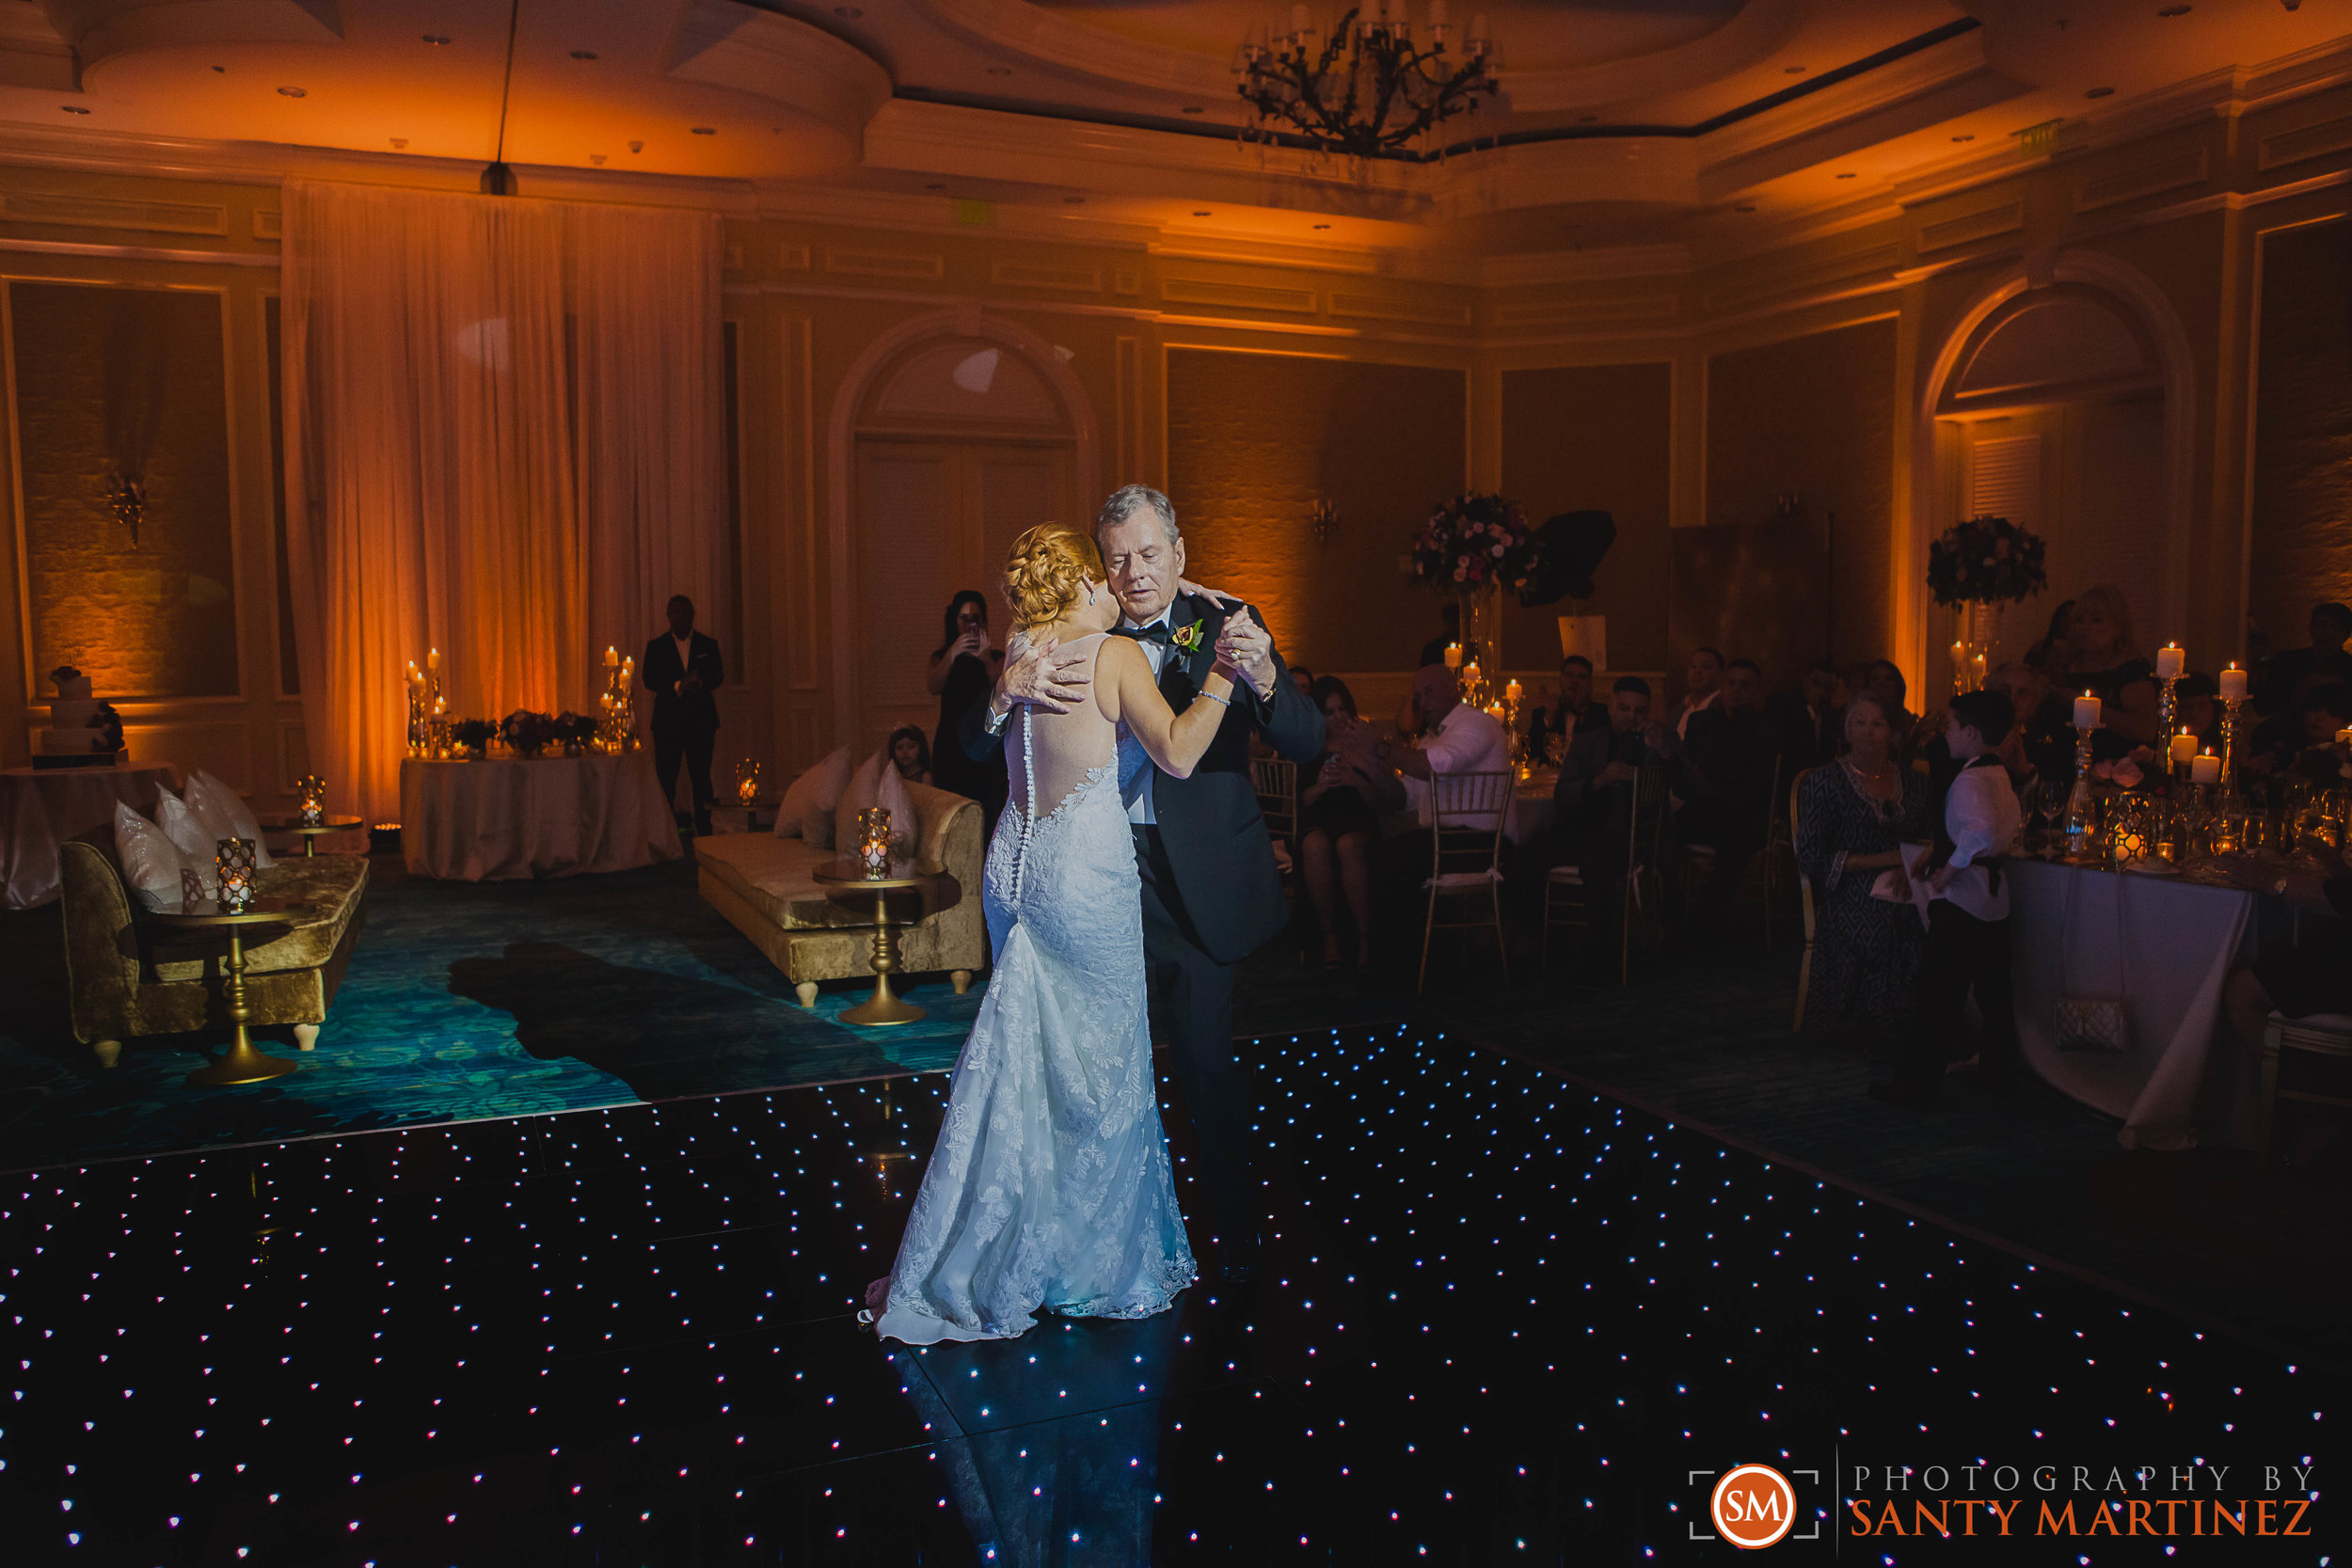 Wedding Ritz Carlton Coconut Grove - Santy Martinez-37.jpg